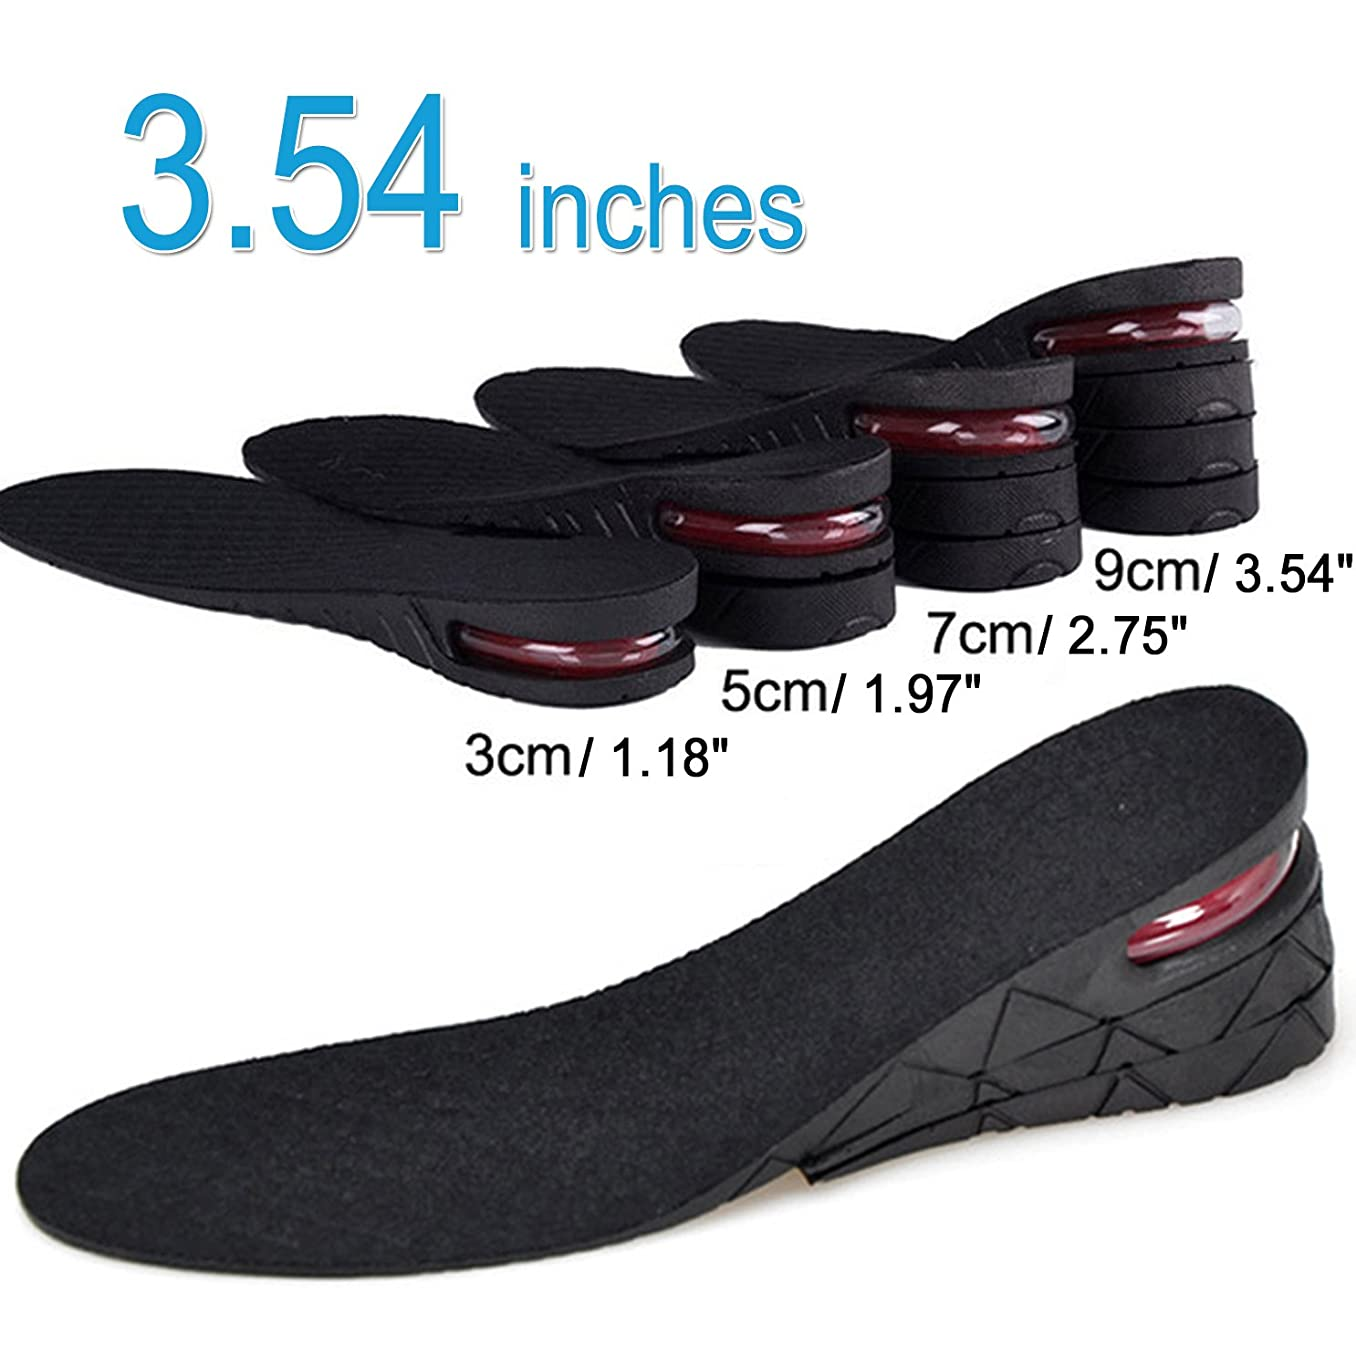 4-Layer Unisex Height Hight Increase Shoe Insoles Lifts for Men Women Shoe Pad Lift Kit Air Cushion Heel Inserts 4 Layer (3.54